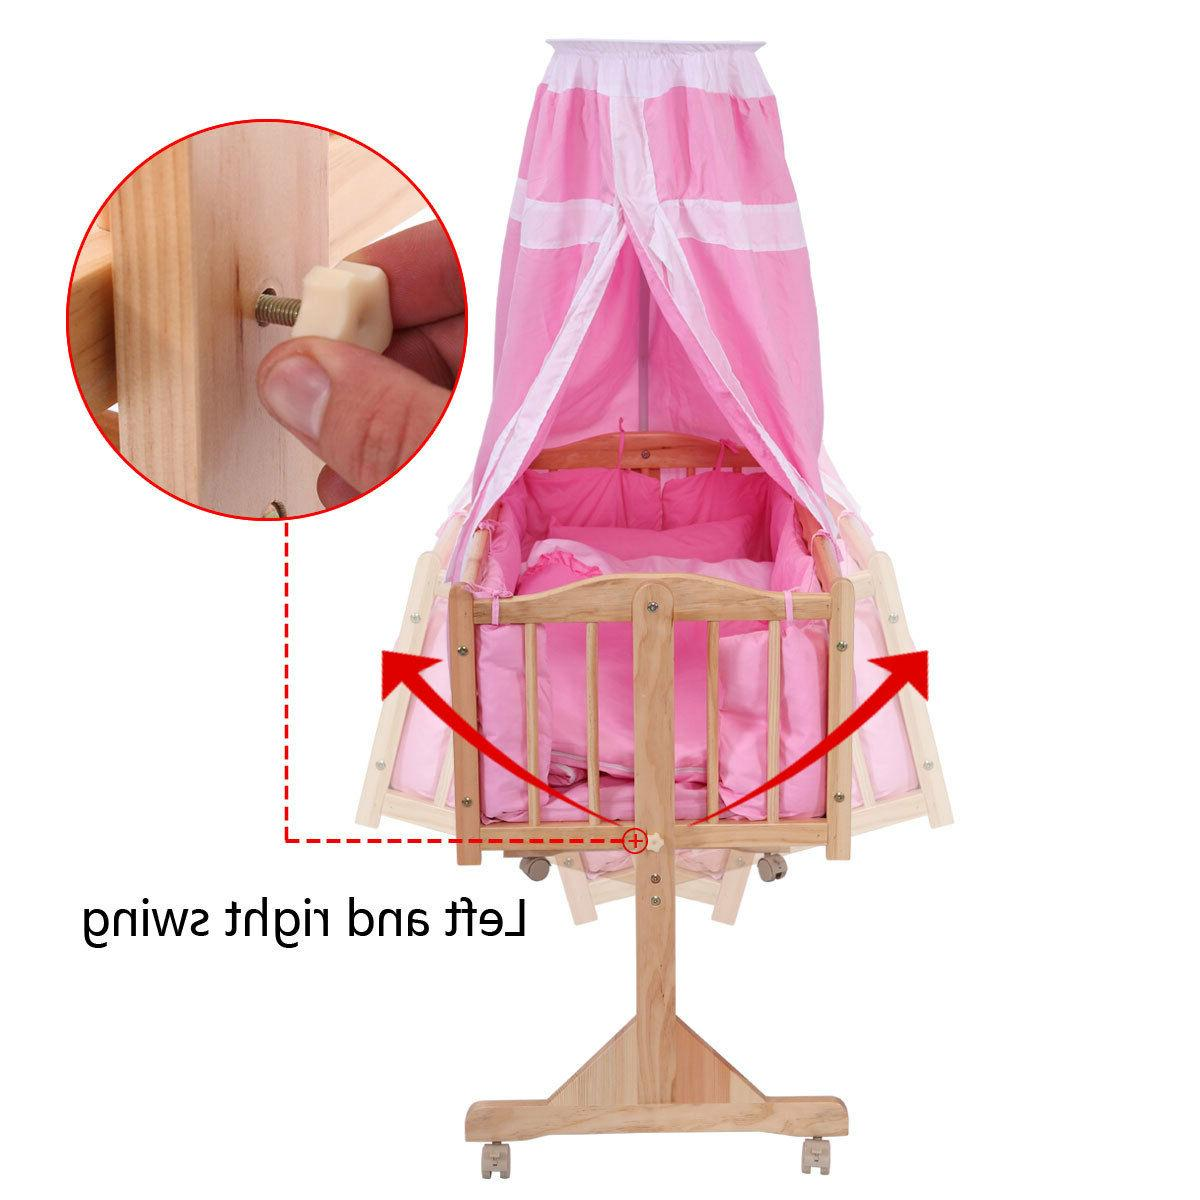 Pine Wood Toddler Bed Furniture Safety